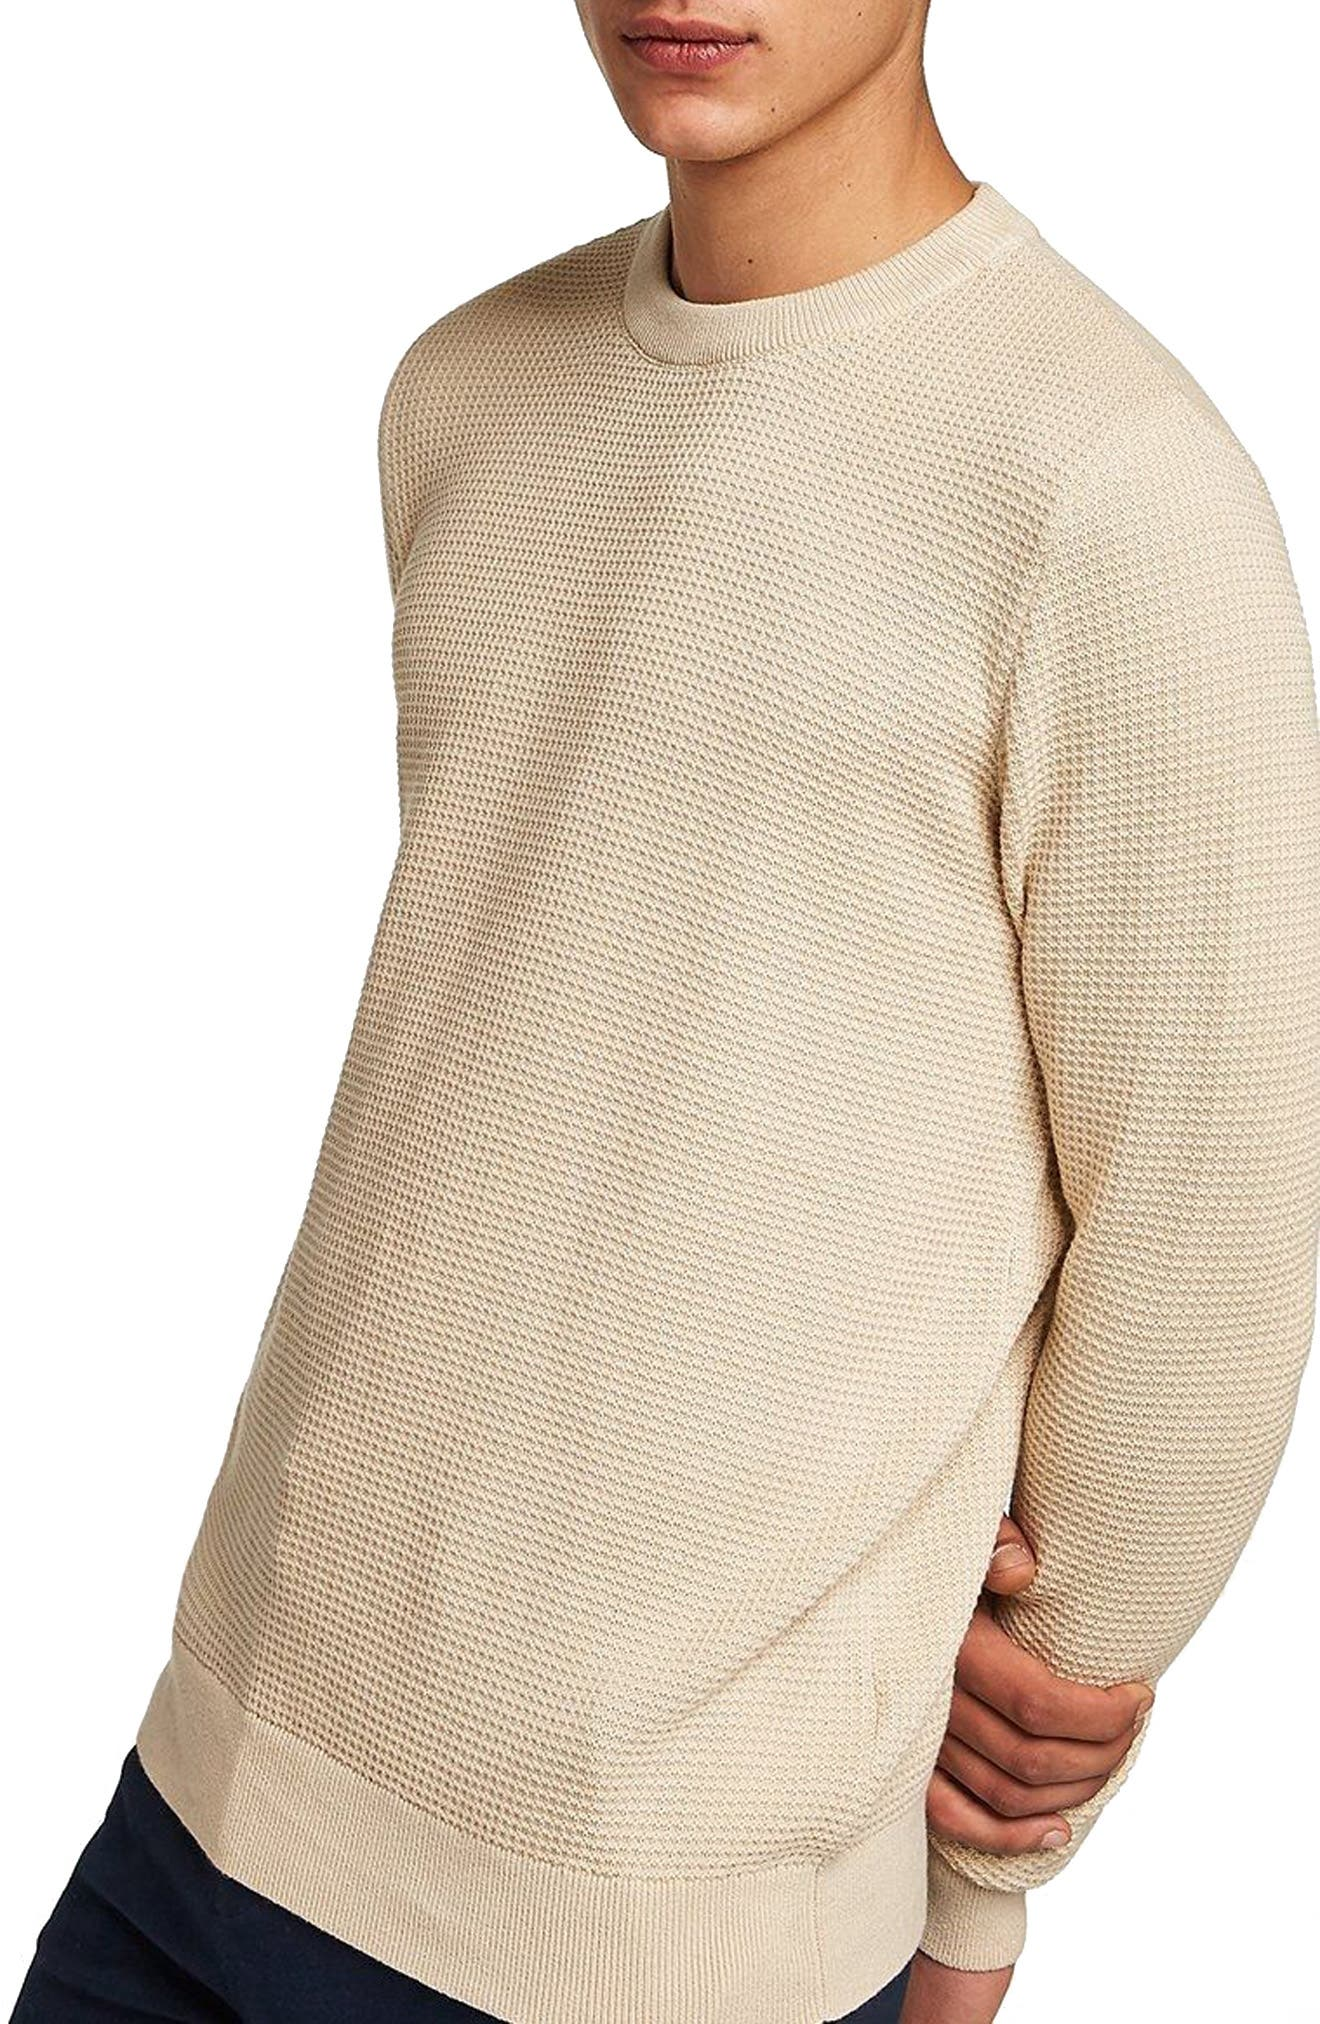 Thermal Knit Sweater,                             Main thumbnail 1, color,                             250